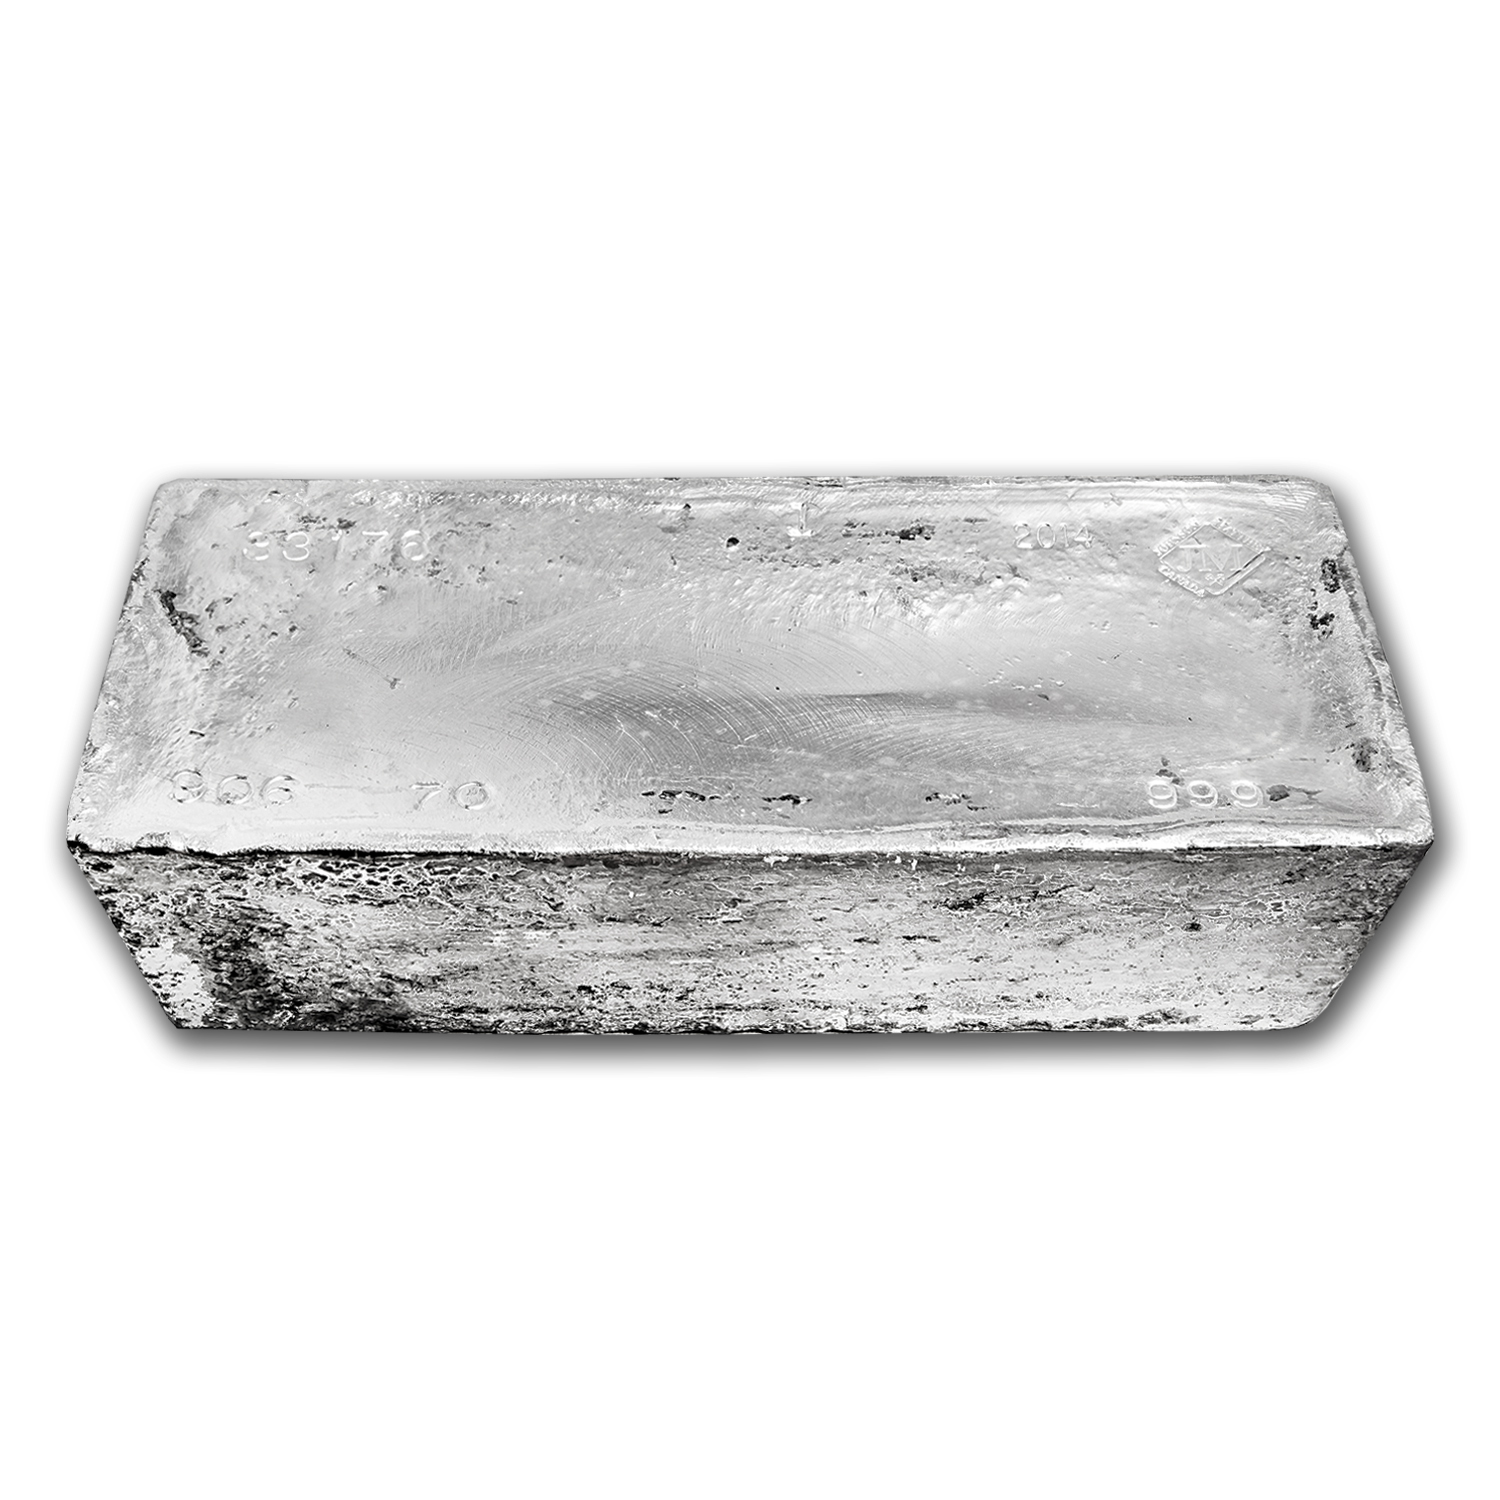 961.60 oz Silver Bars - Johnson Matthey